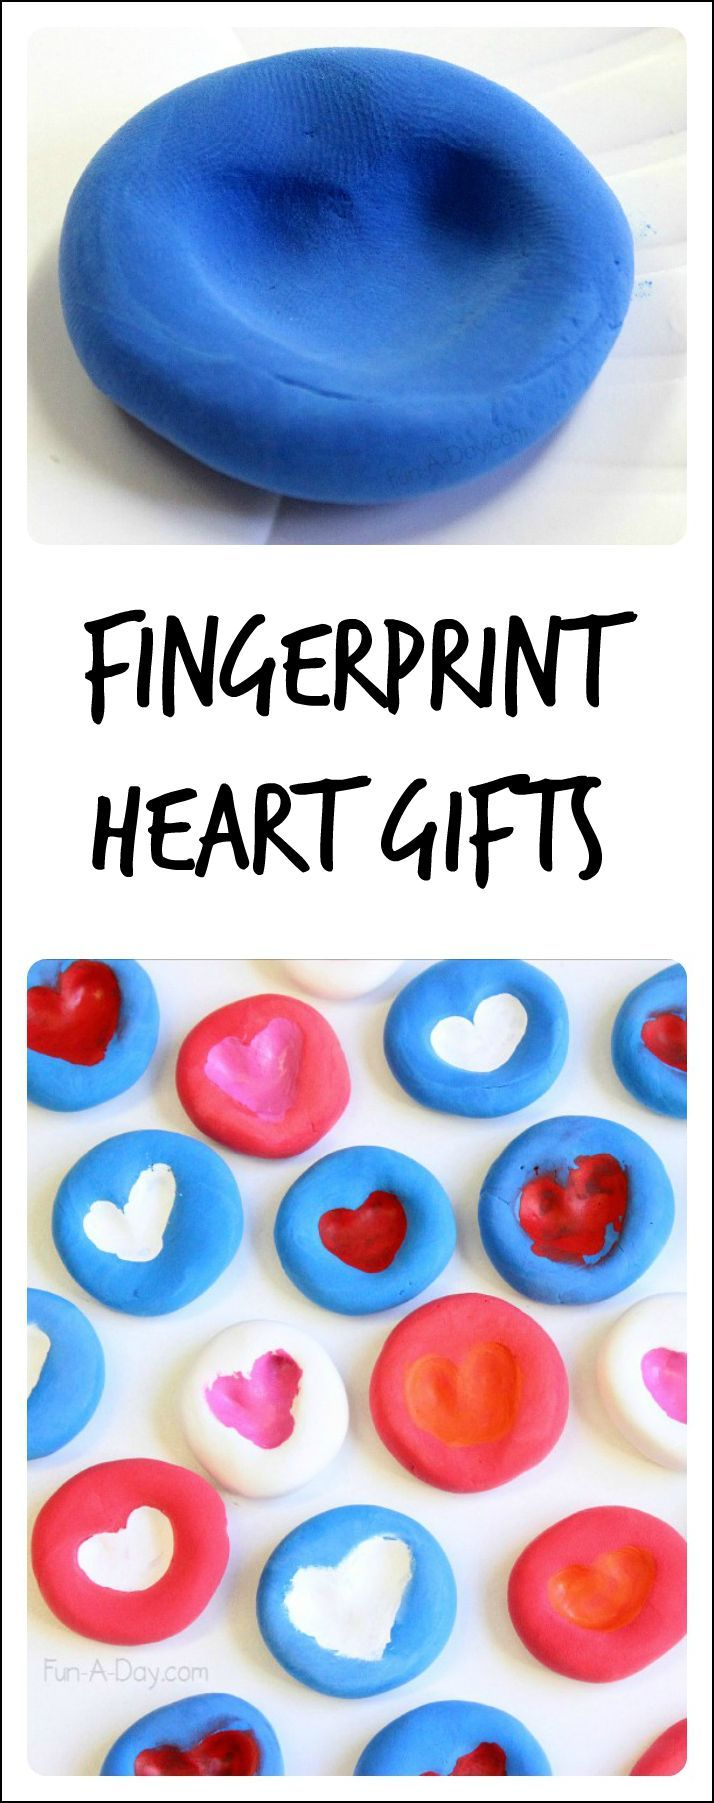 Fingerprint heart gifts kids can make - two different ways to try it out with the kids. They came out so beautiful! Great for birthdays, Valentine's Day, Mother's/Father's Day, etc!